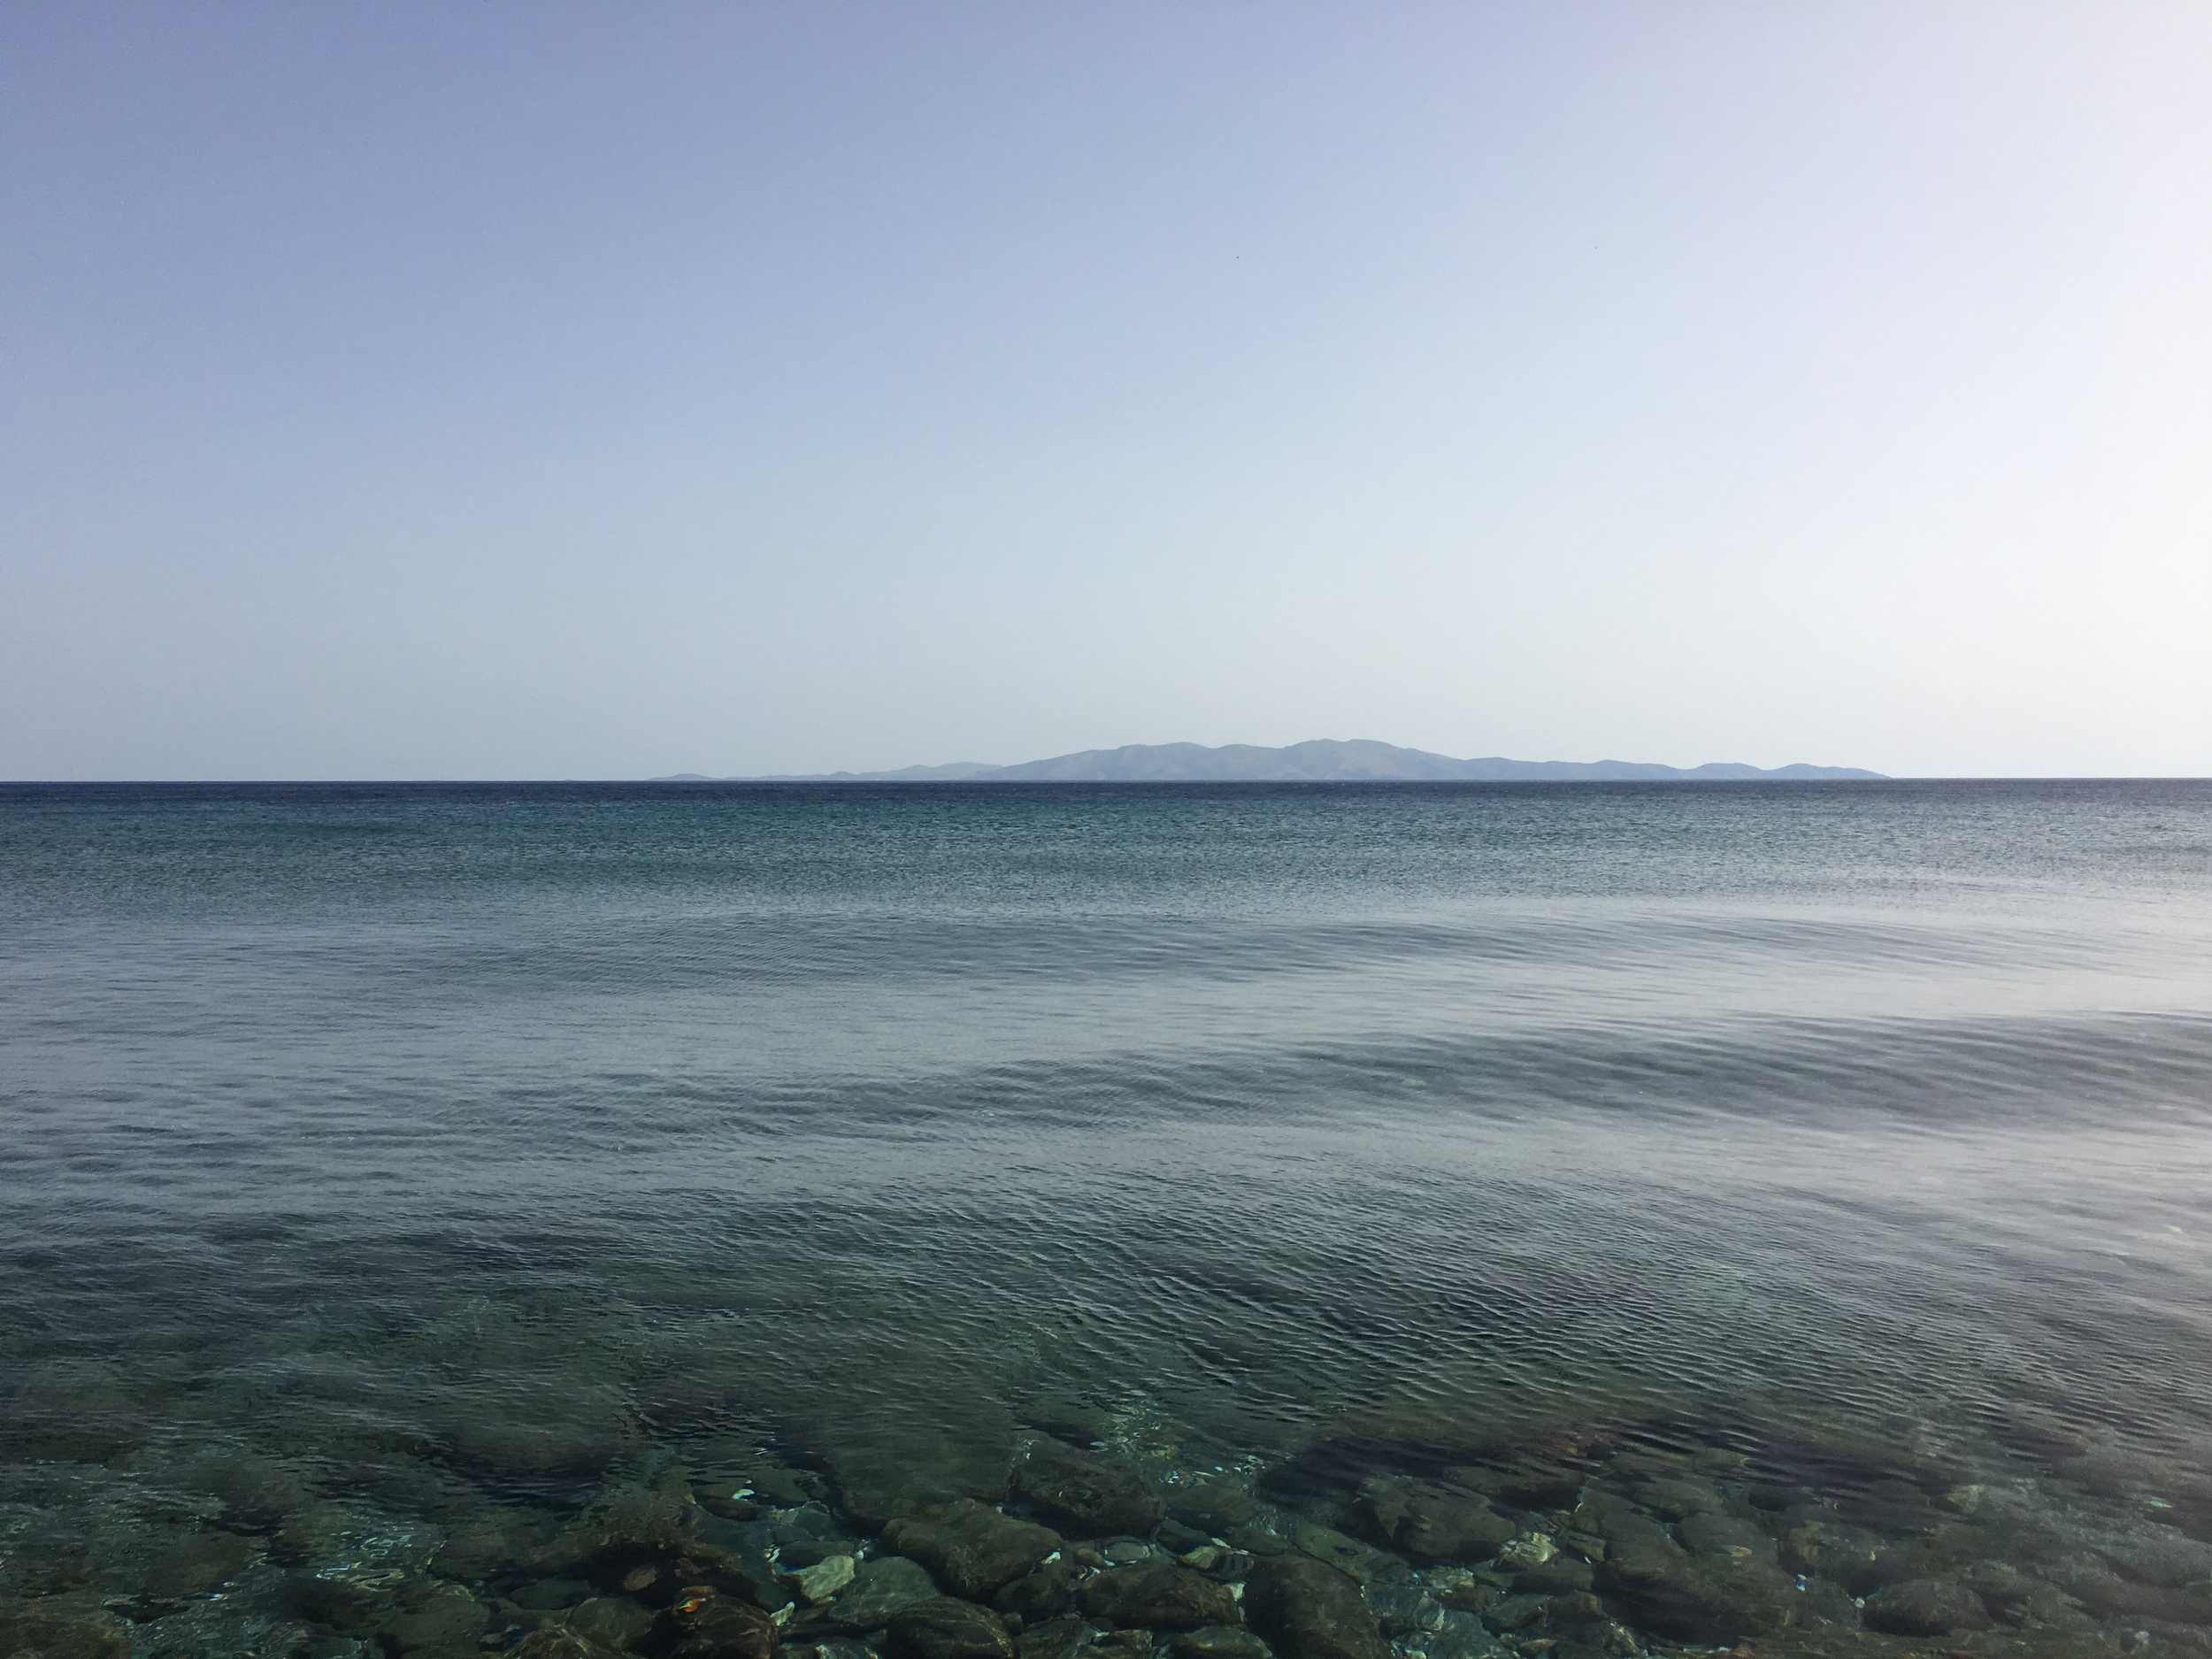 The view from Thalassaki tavern in Isternia bay